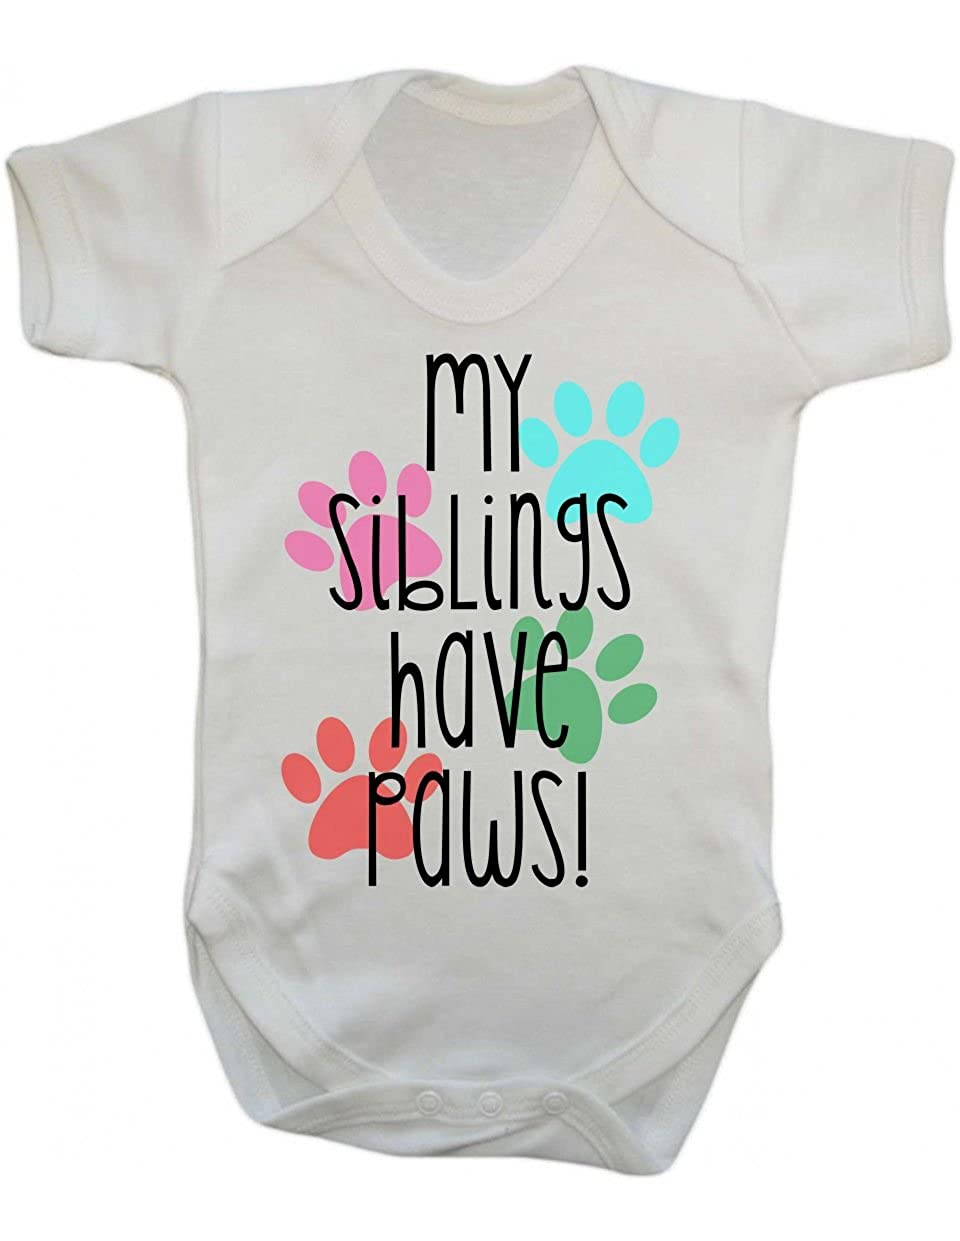 Siblings have paws ~ baby vest ~ new born baby ~ dog lover ~ animal lover ~ pets ~ pregnancy announcement ~ birth announcement